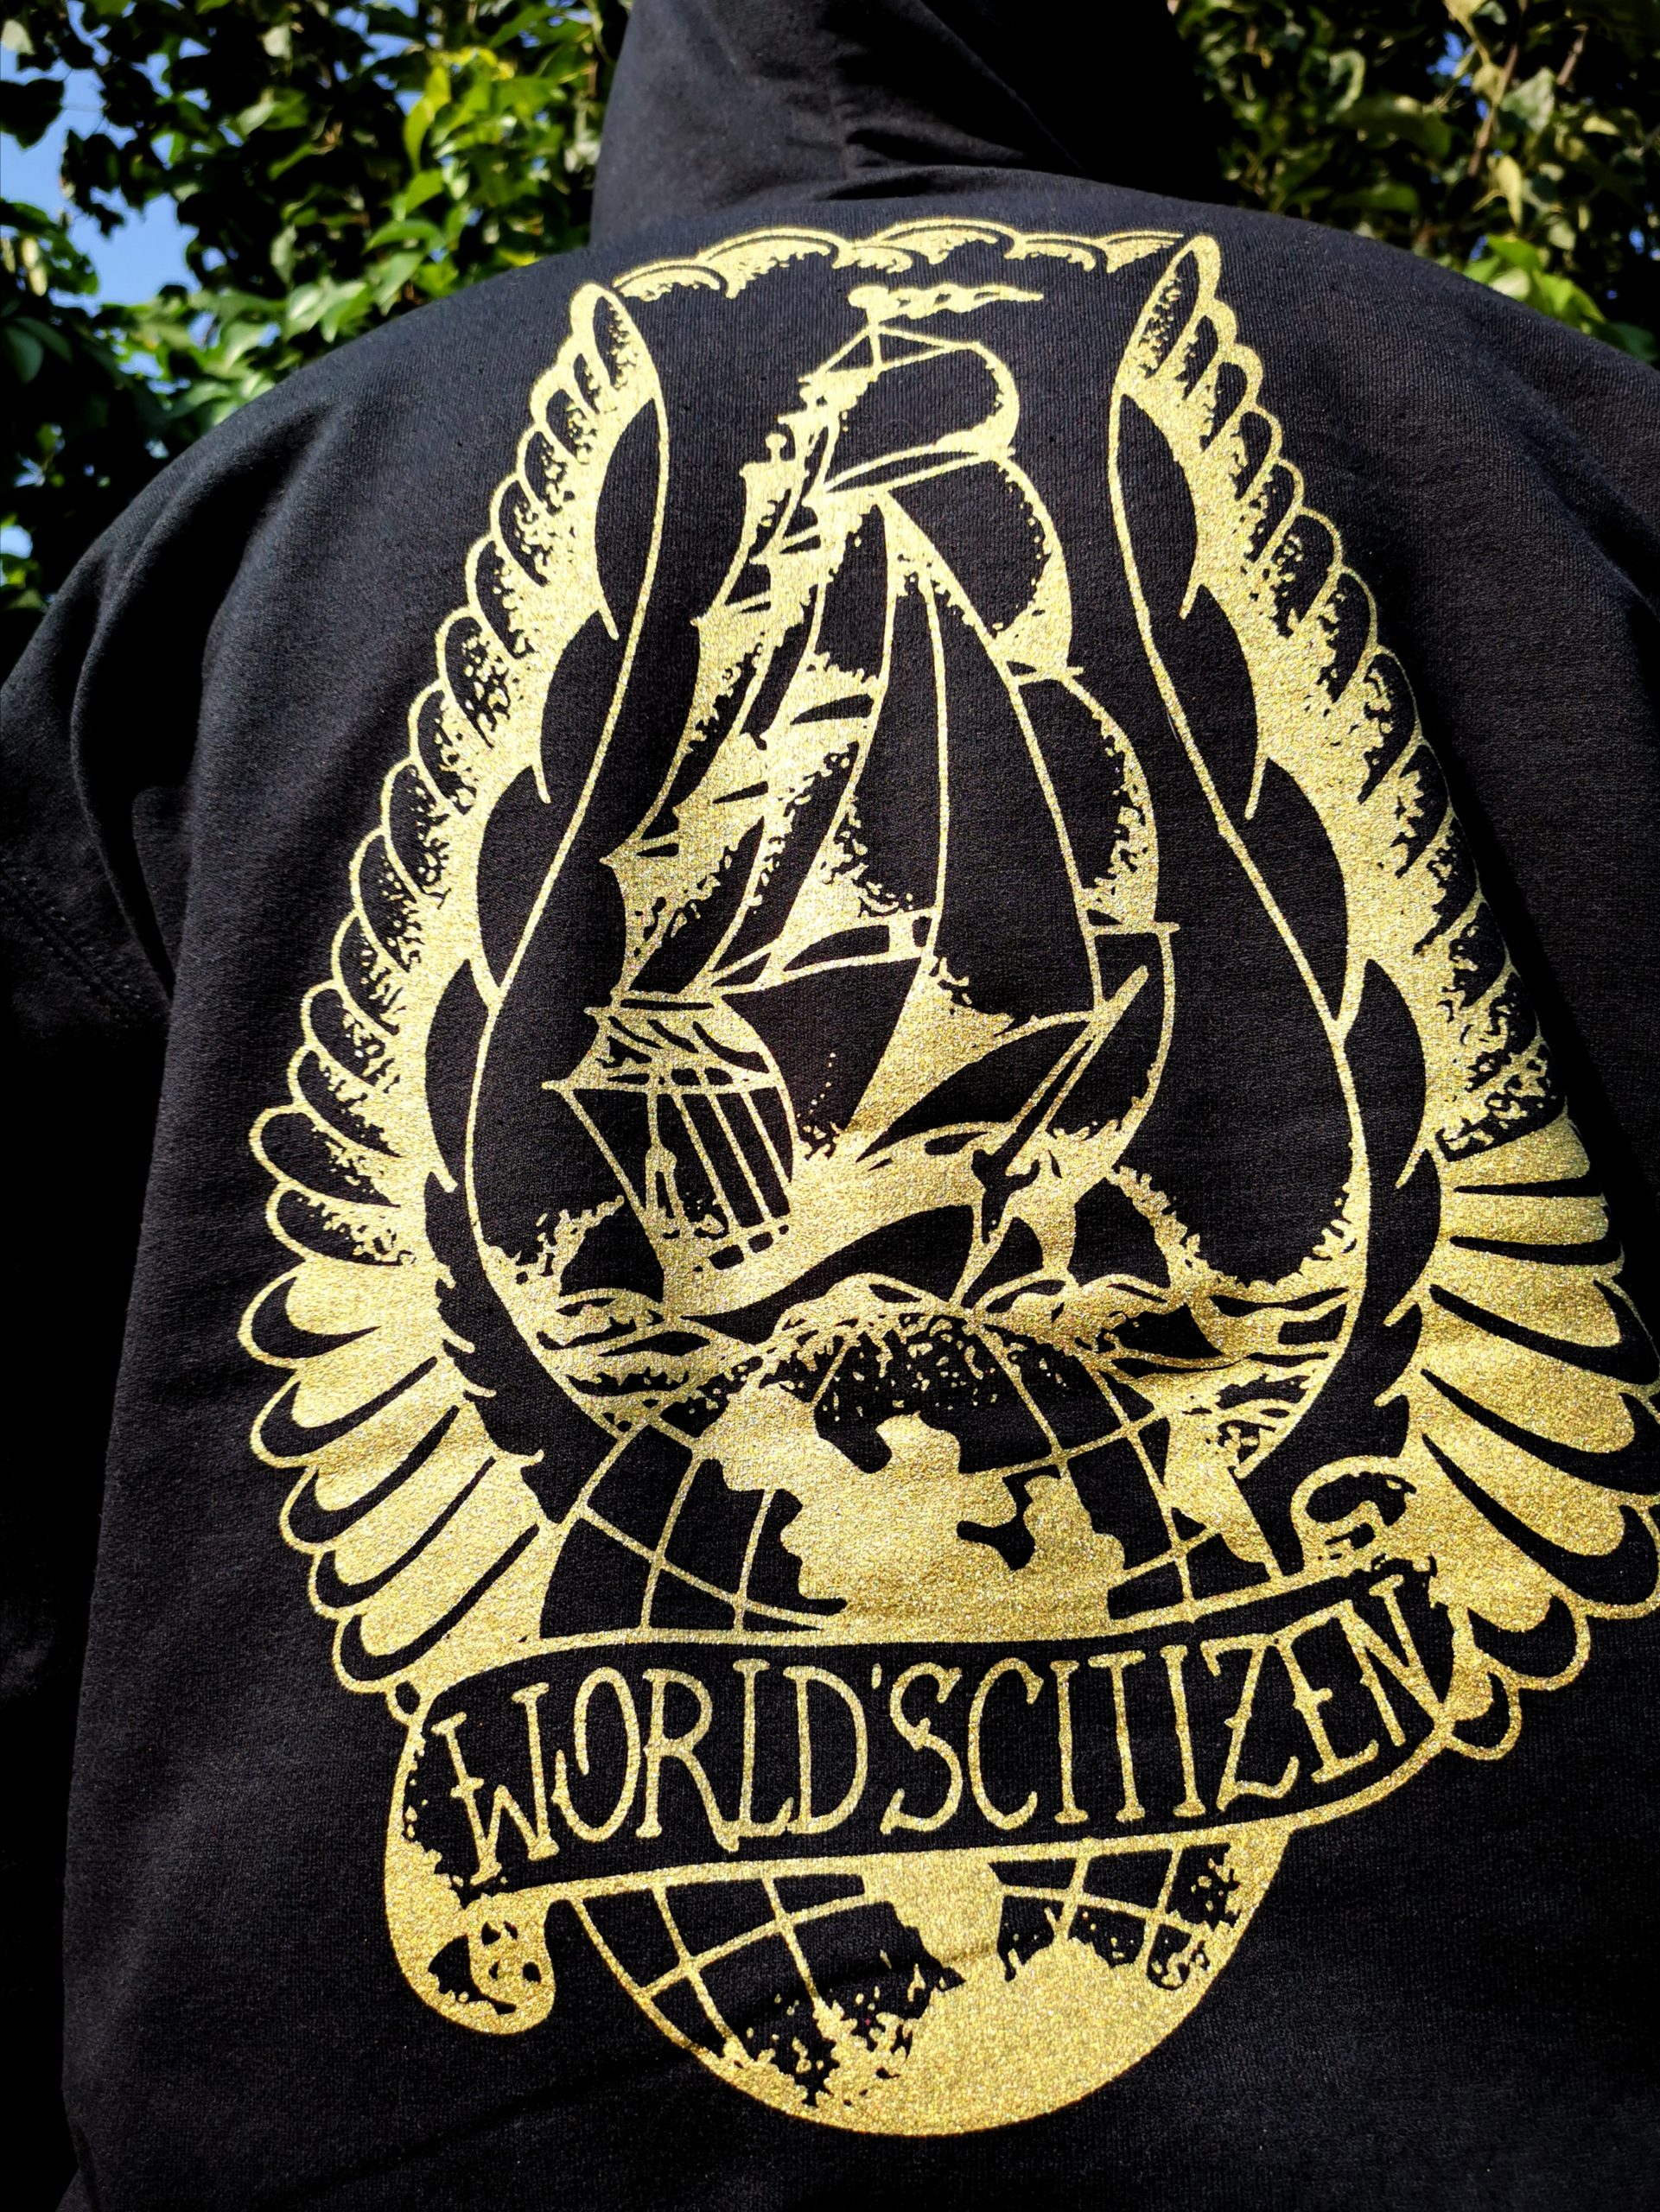 BACK DESIGN - World´s´Citizen Ship by Ivan Herrera Traditional Tattoos©